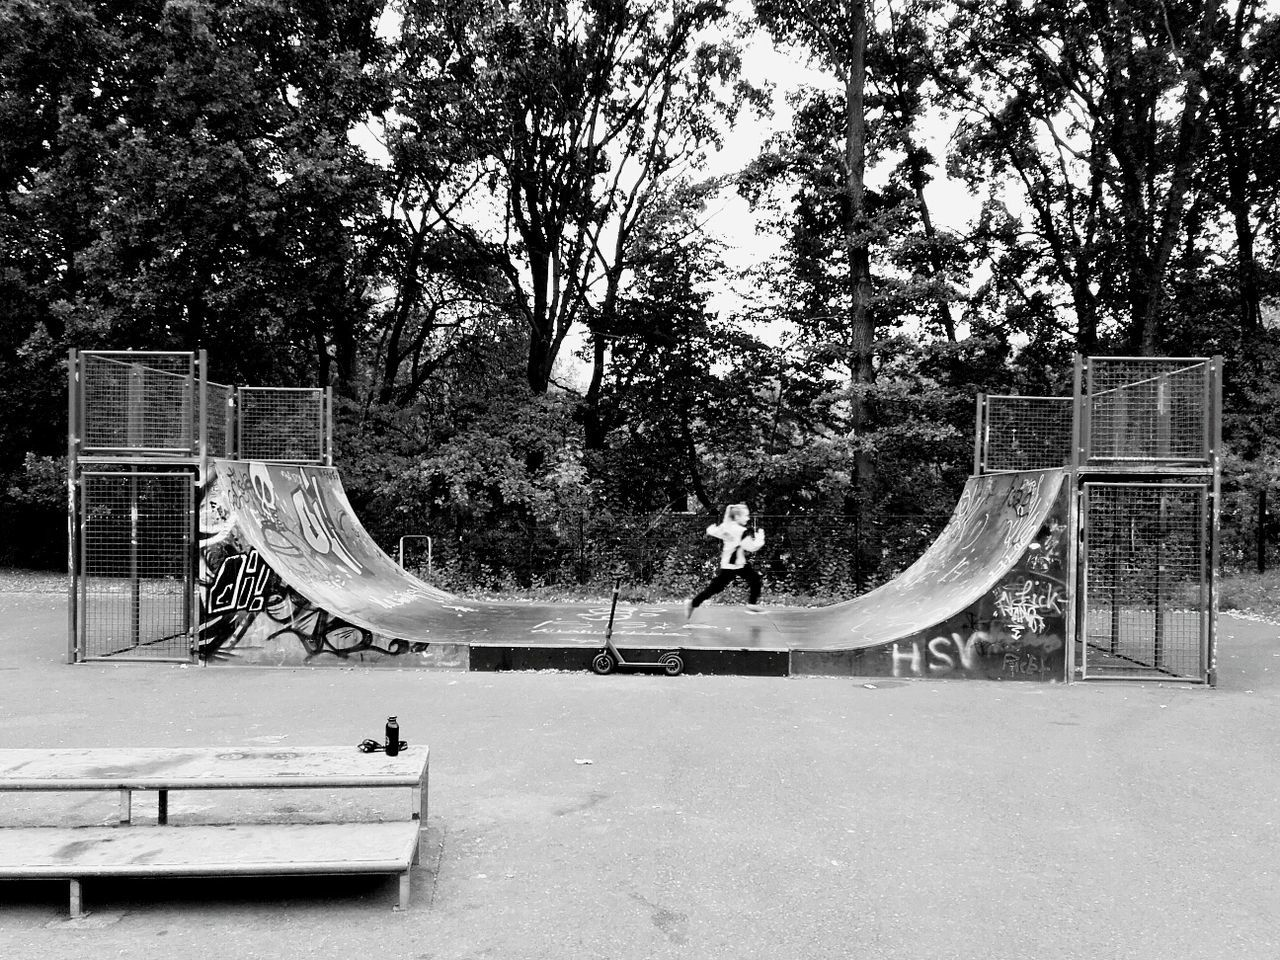 tree, playground, day, park - man made space, outdoors, leisure activity, real people, two people, skateboard park, nature, men, sky, people